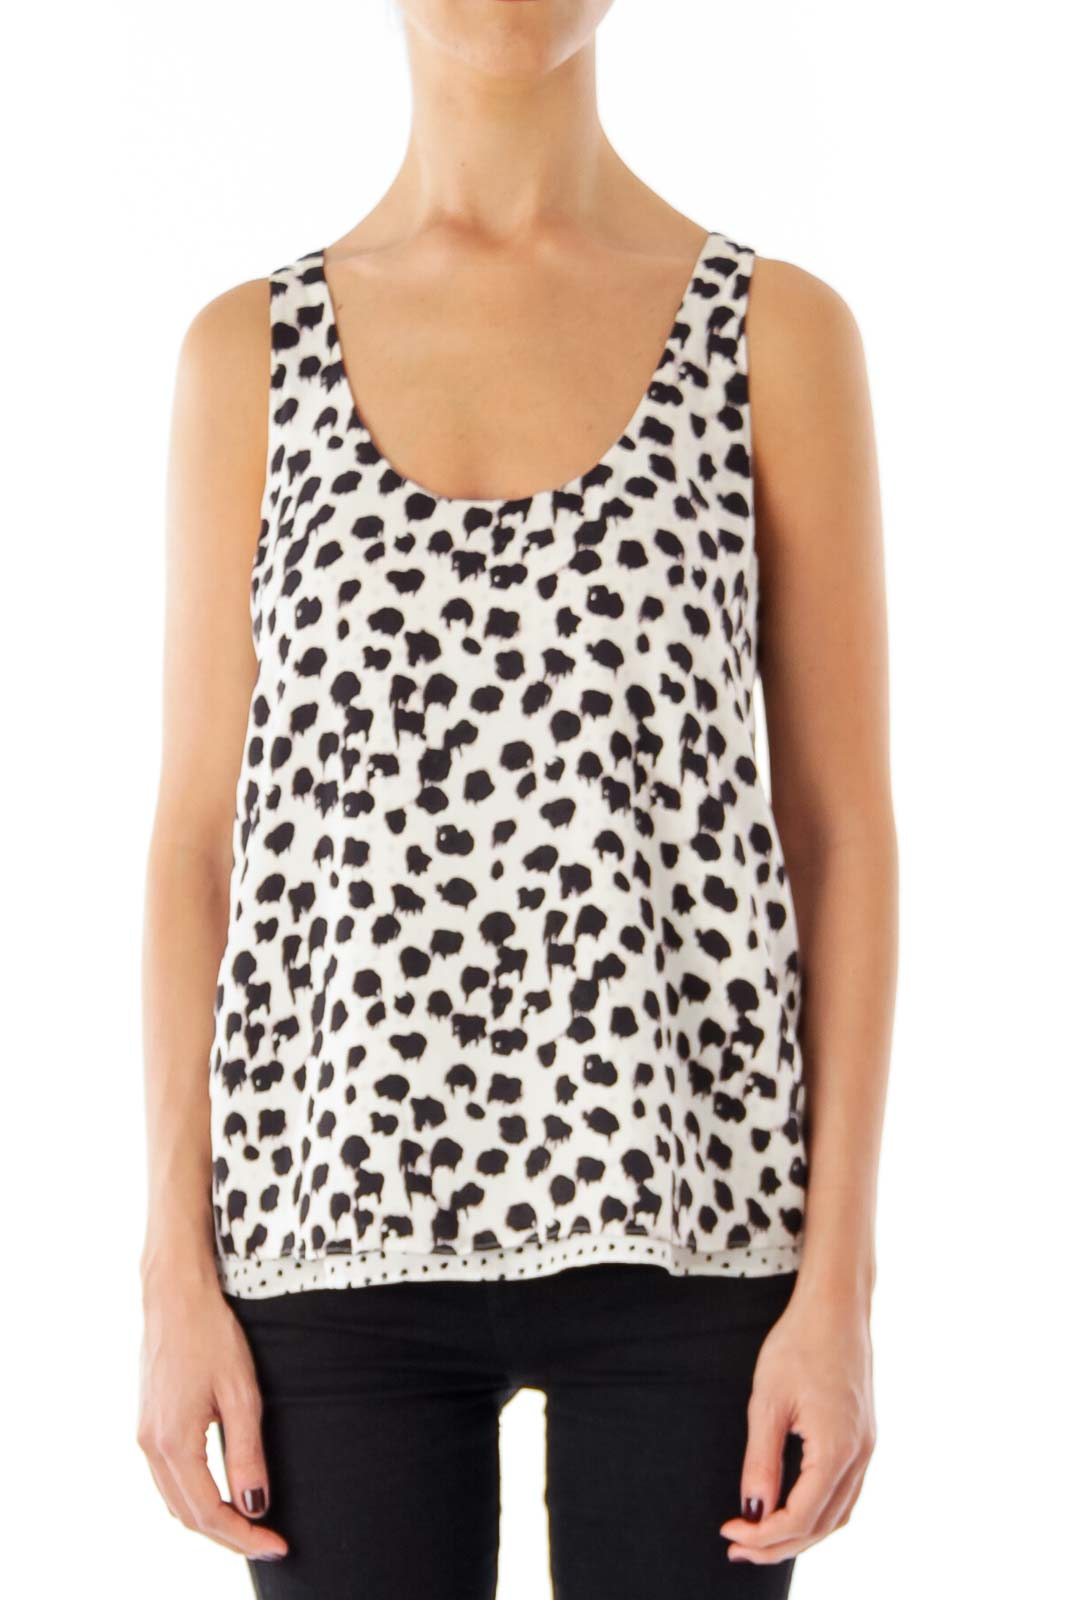 White & Black animal Print Sleeveless top Front